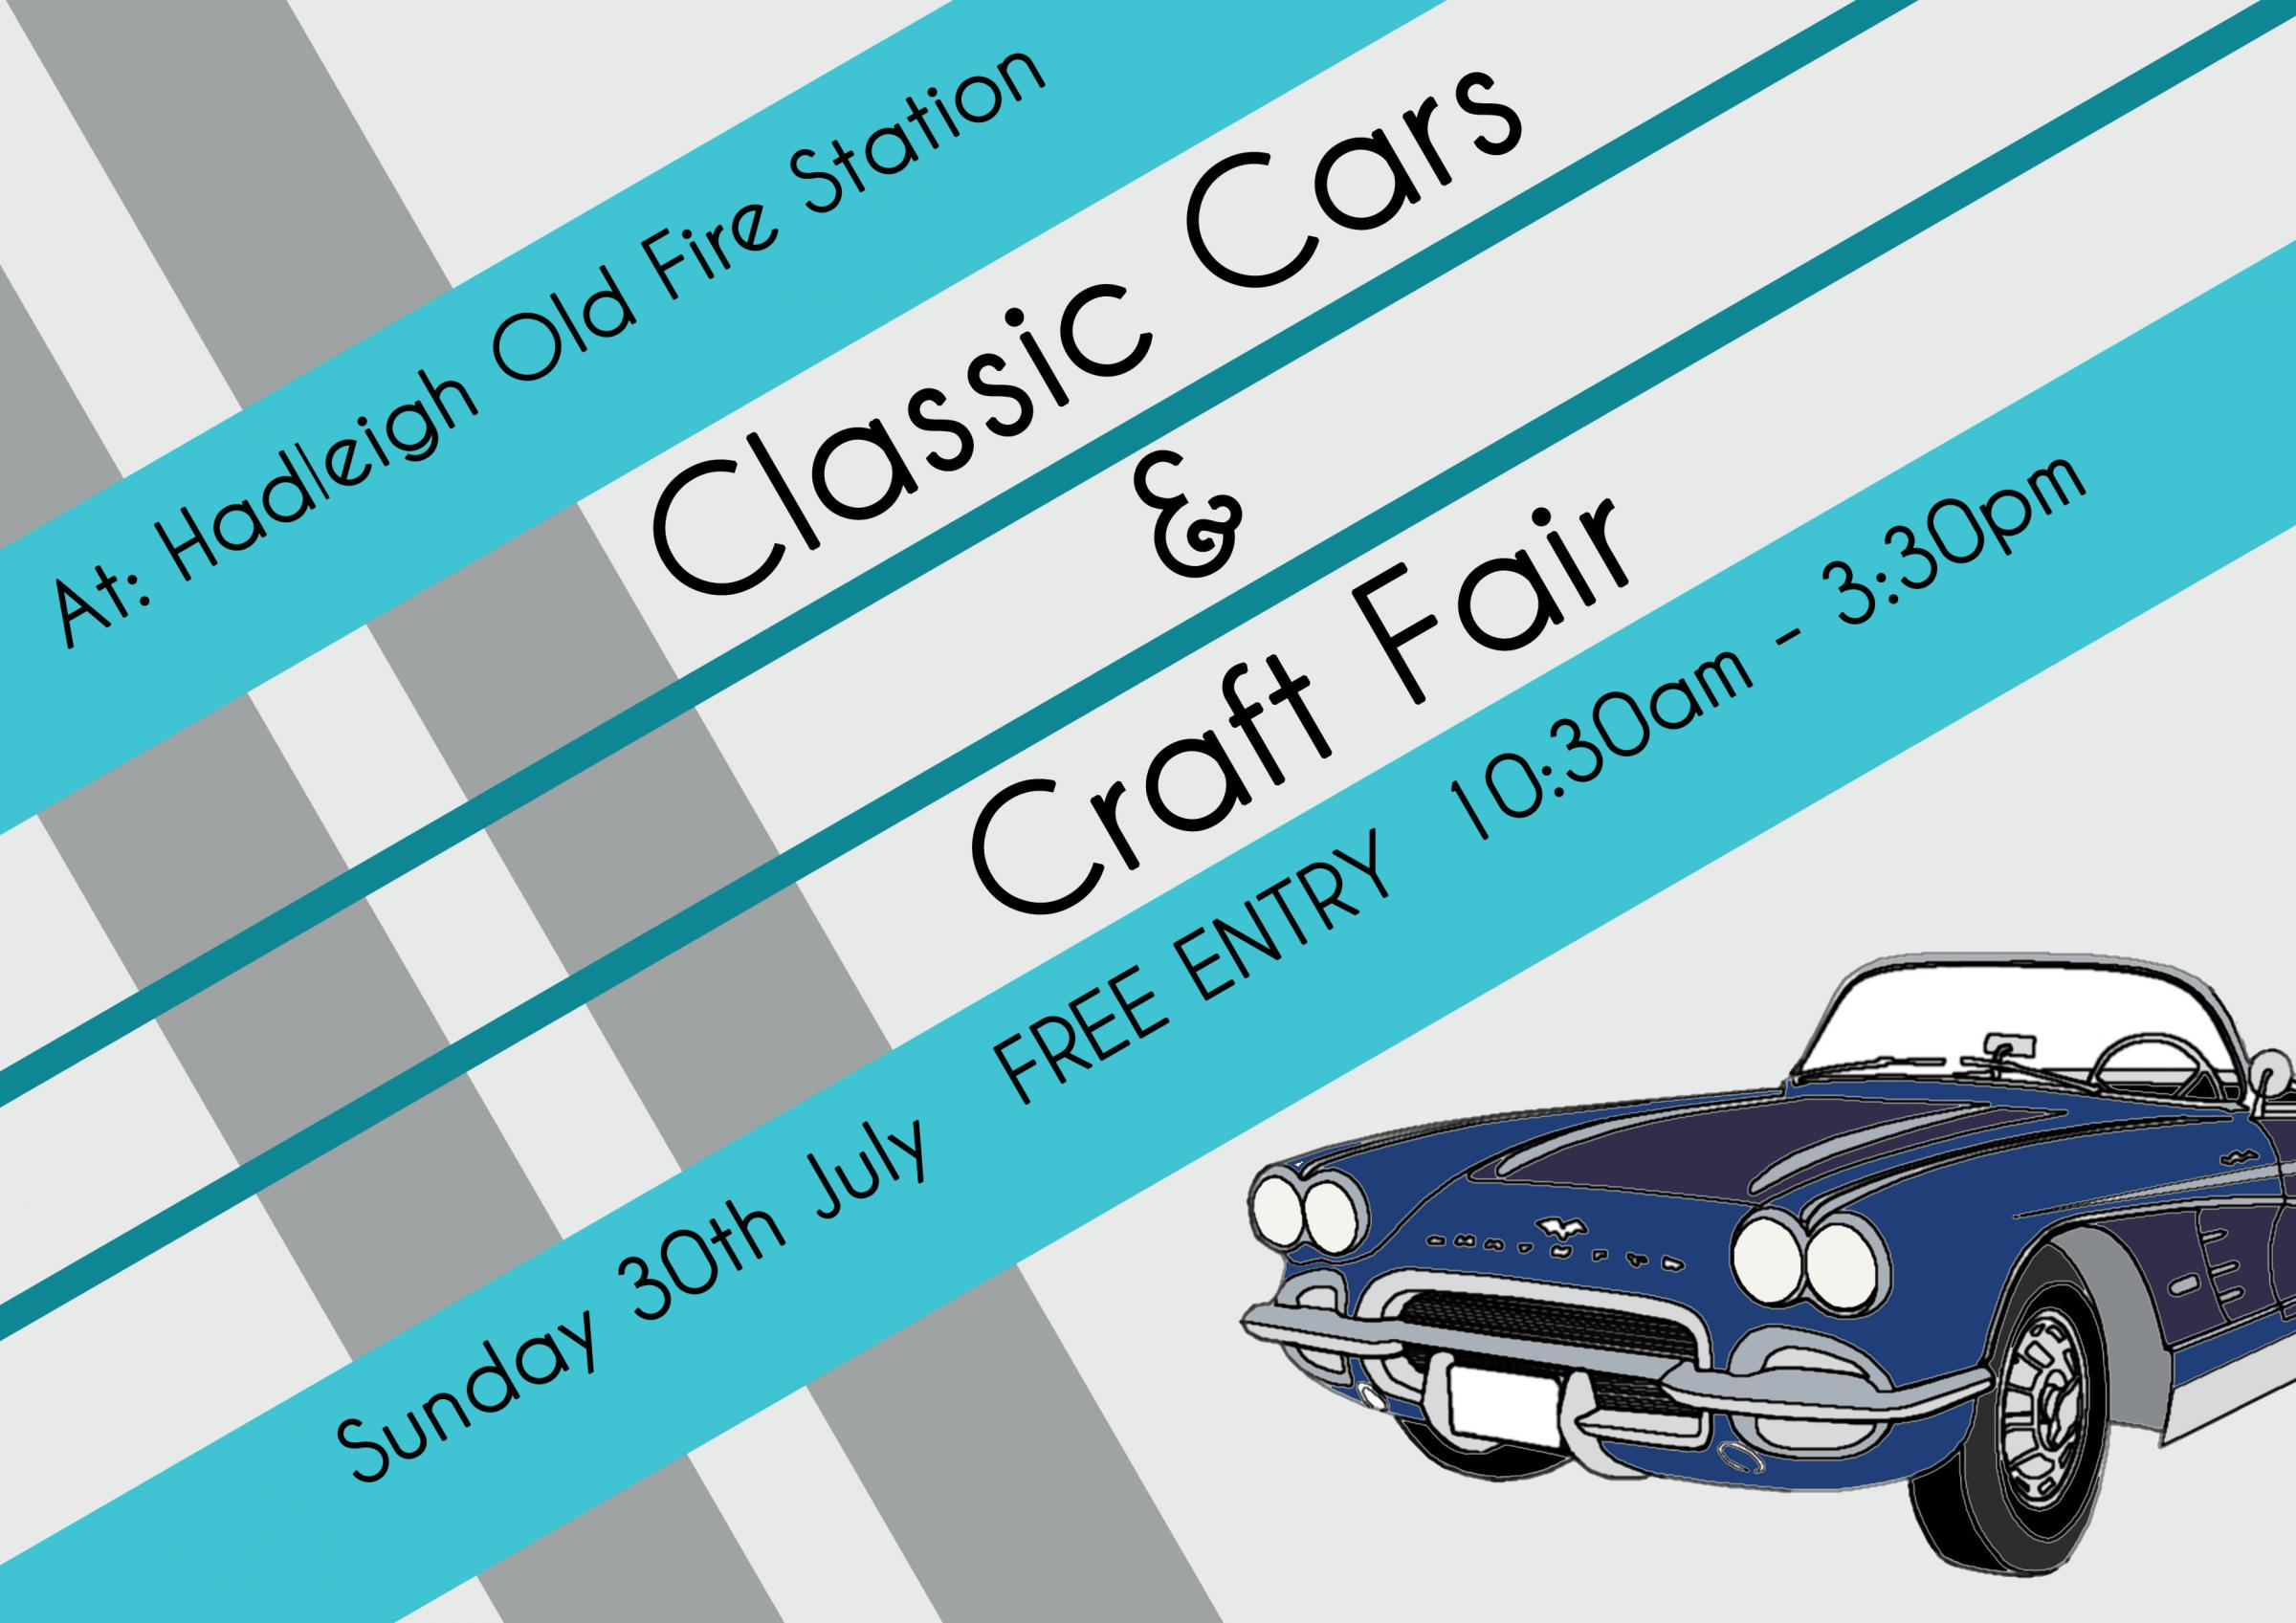 Classic Cars and Craft Fair